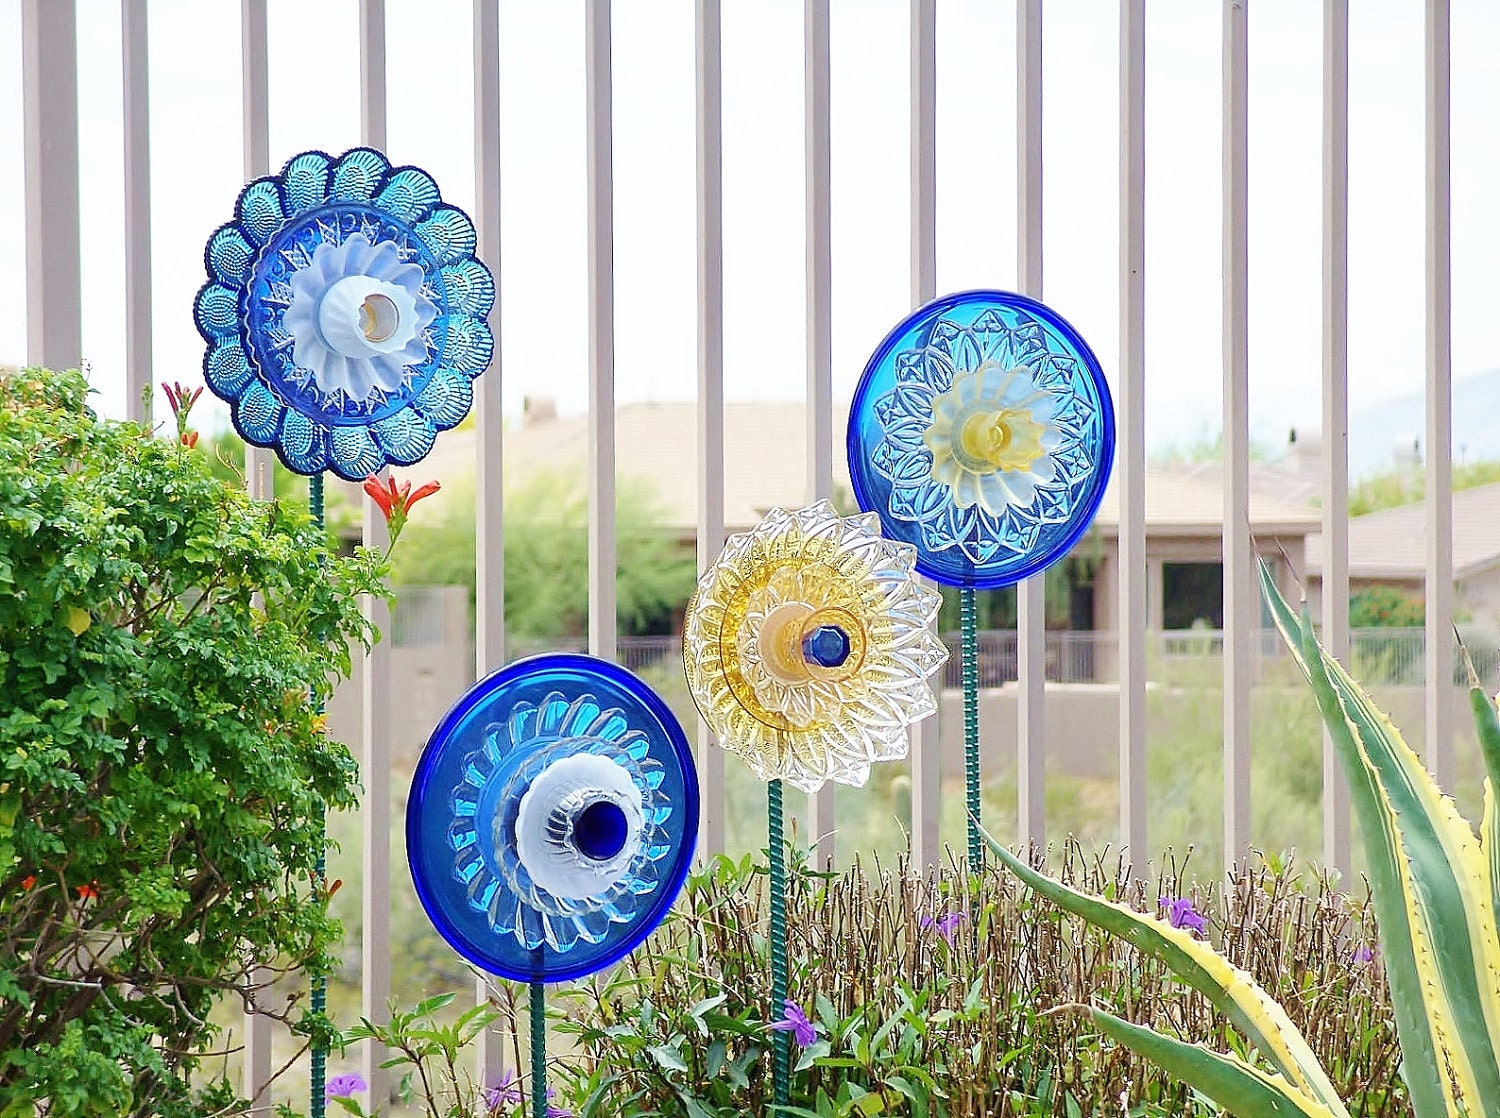 Sale garden art upcycled recycled glass plate flower by - Objets decoration jardin exterieur ...